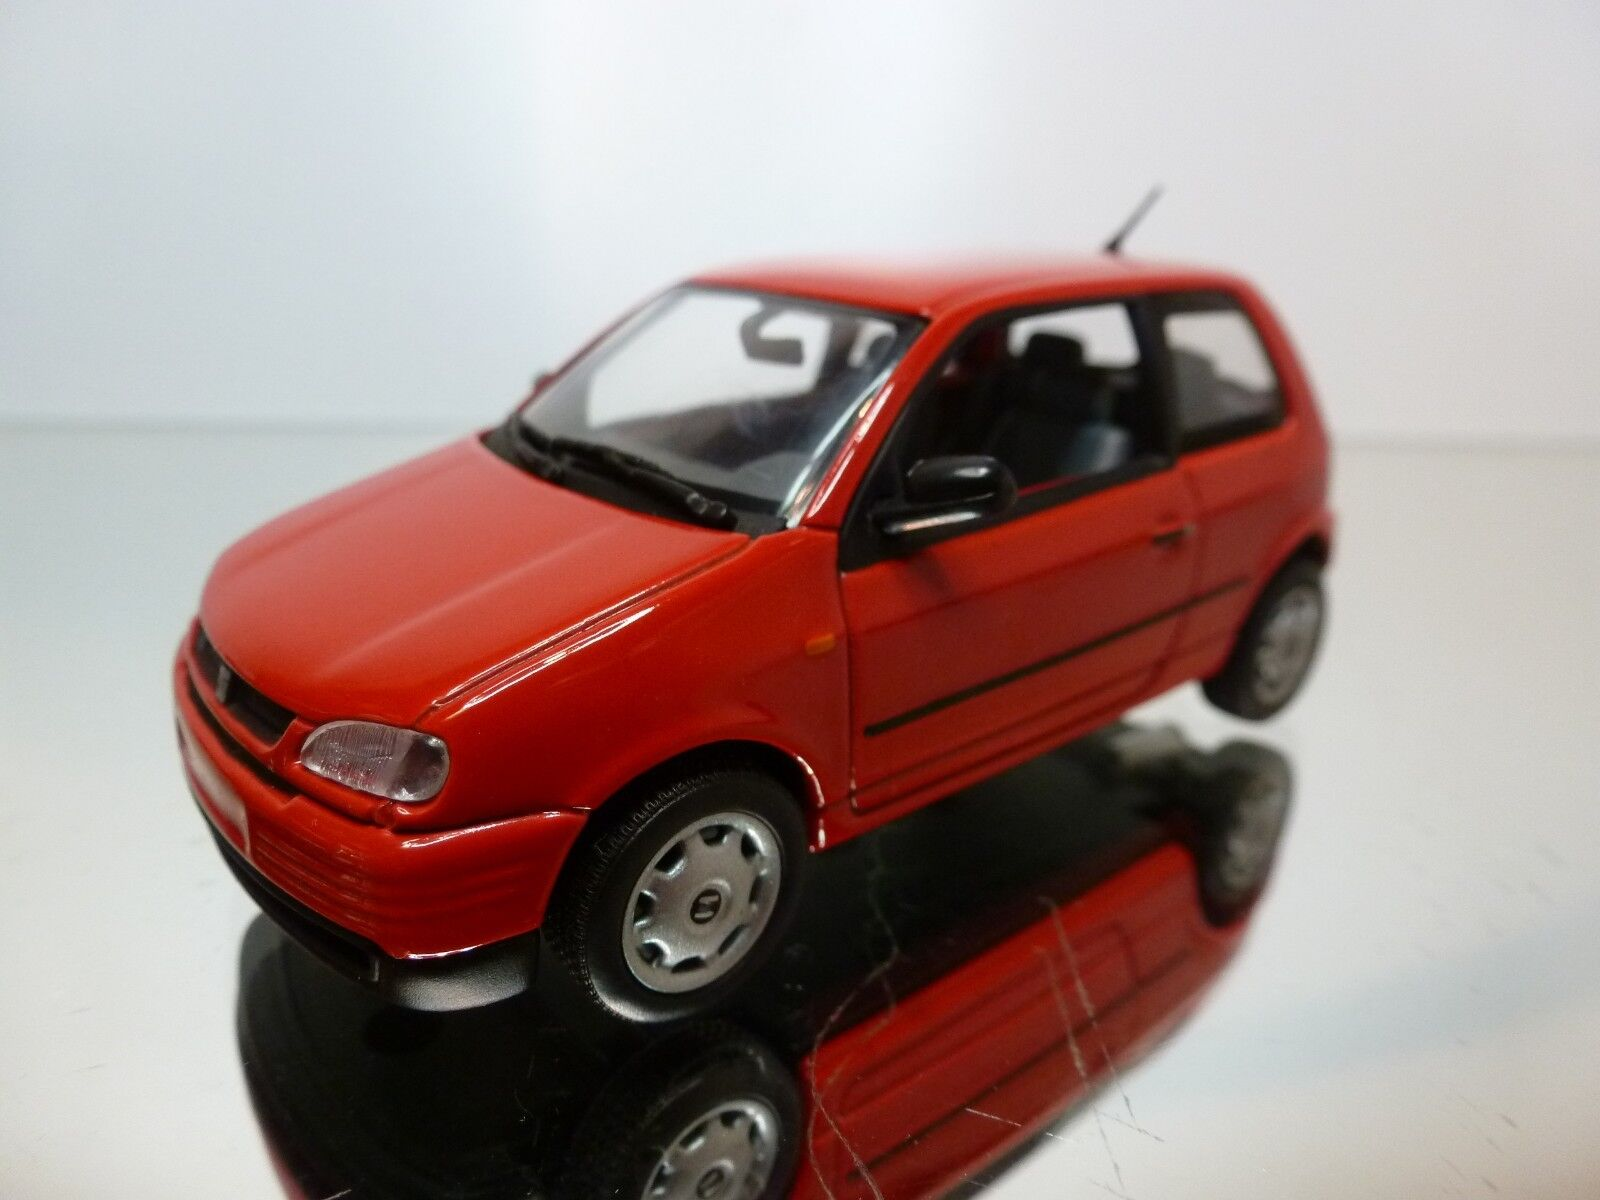 MINICHAMPS SEAT Apink 1997 - - - RED 1 43 - EXCELLENT CONDITION - 13 9 2493da